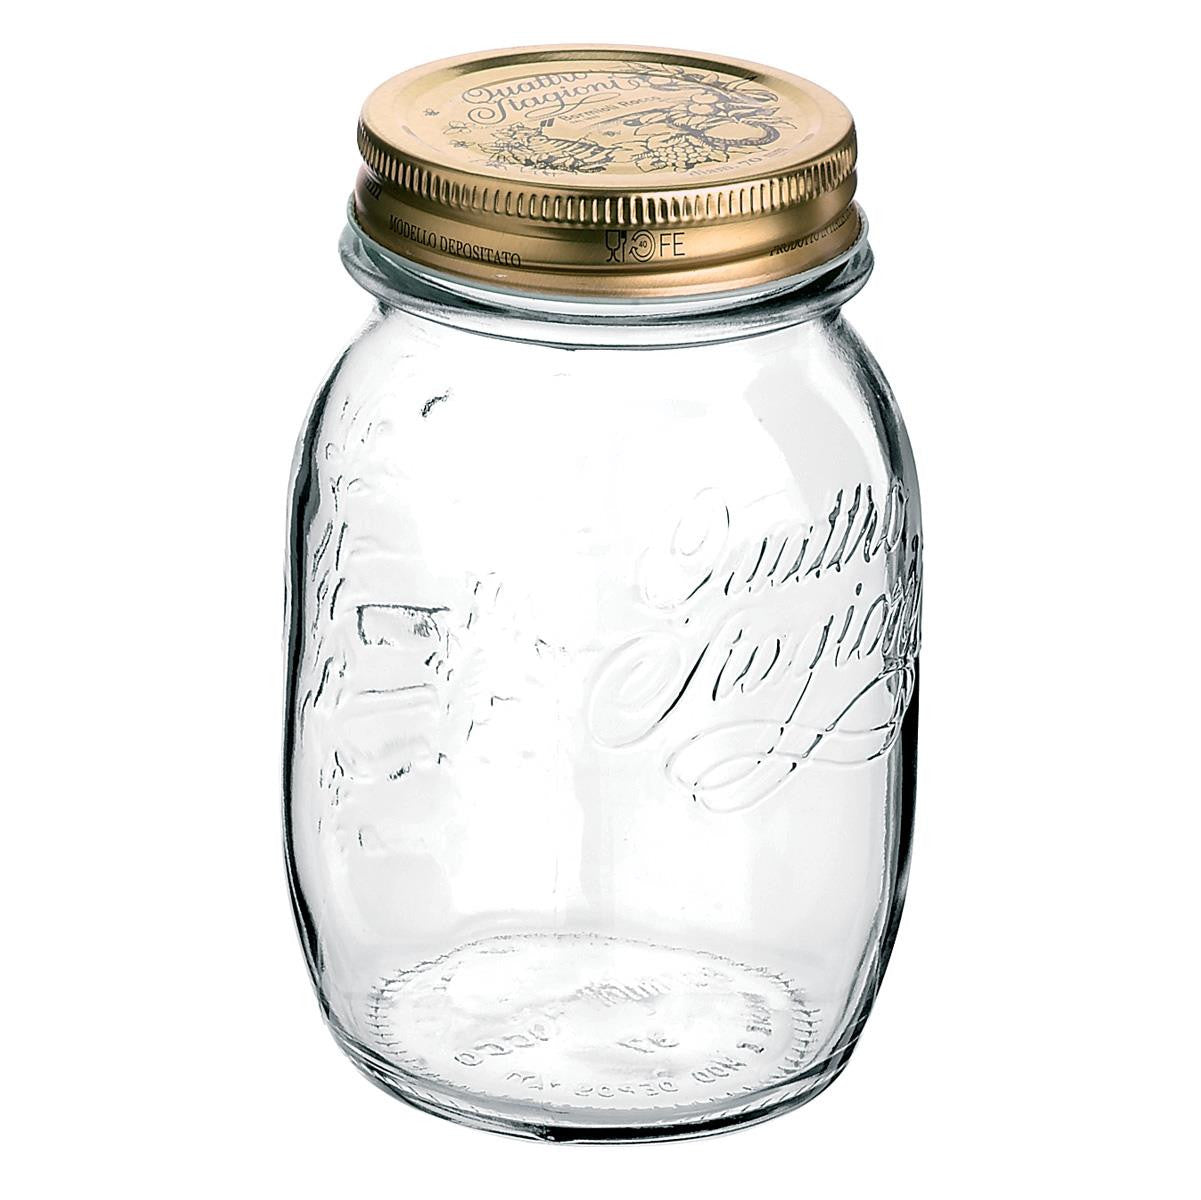 Bormioli Quattro Stagioni Glass Jar with Lid 17oz